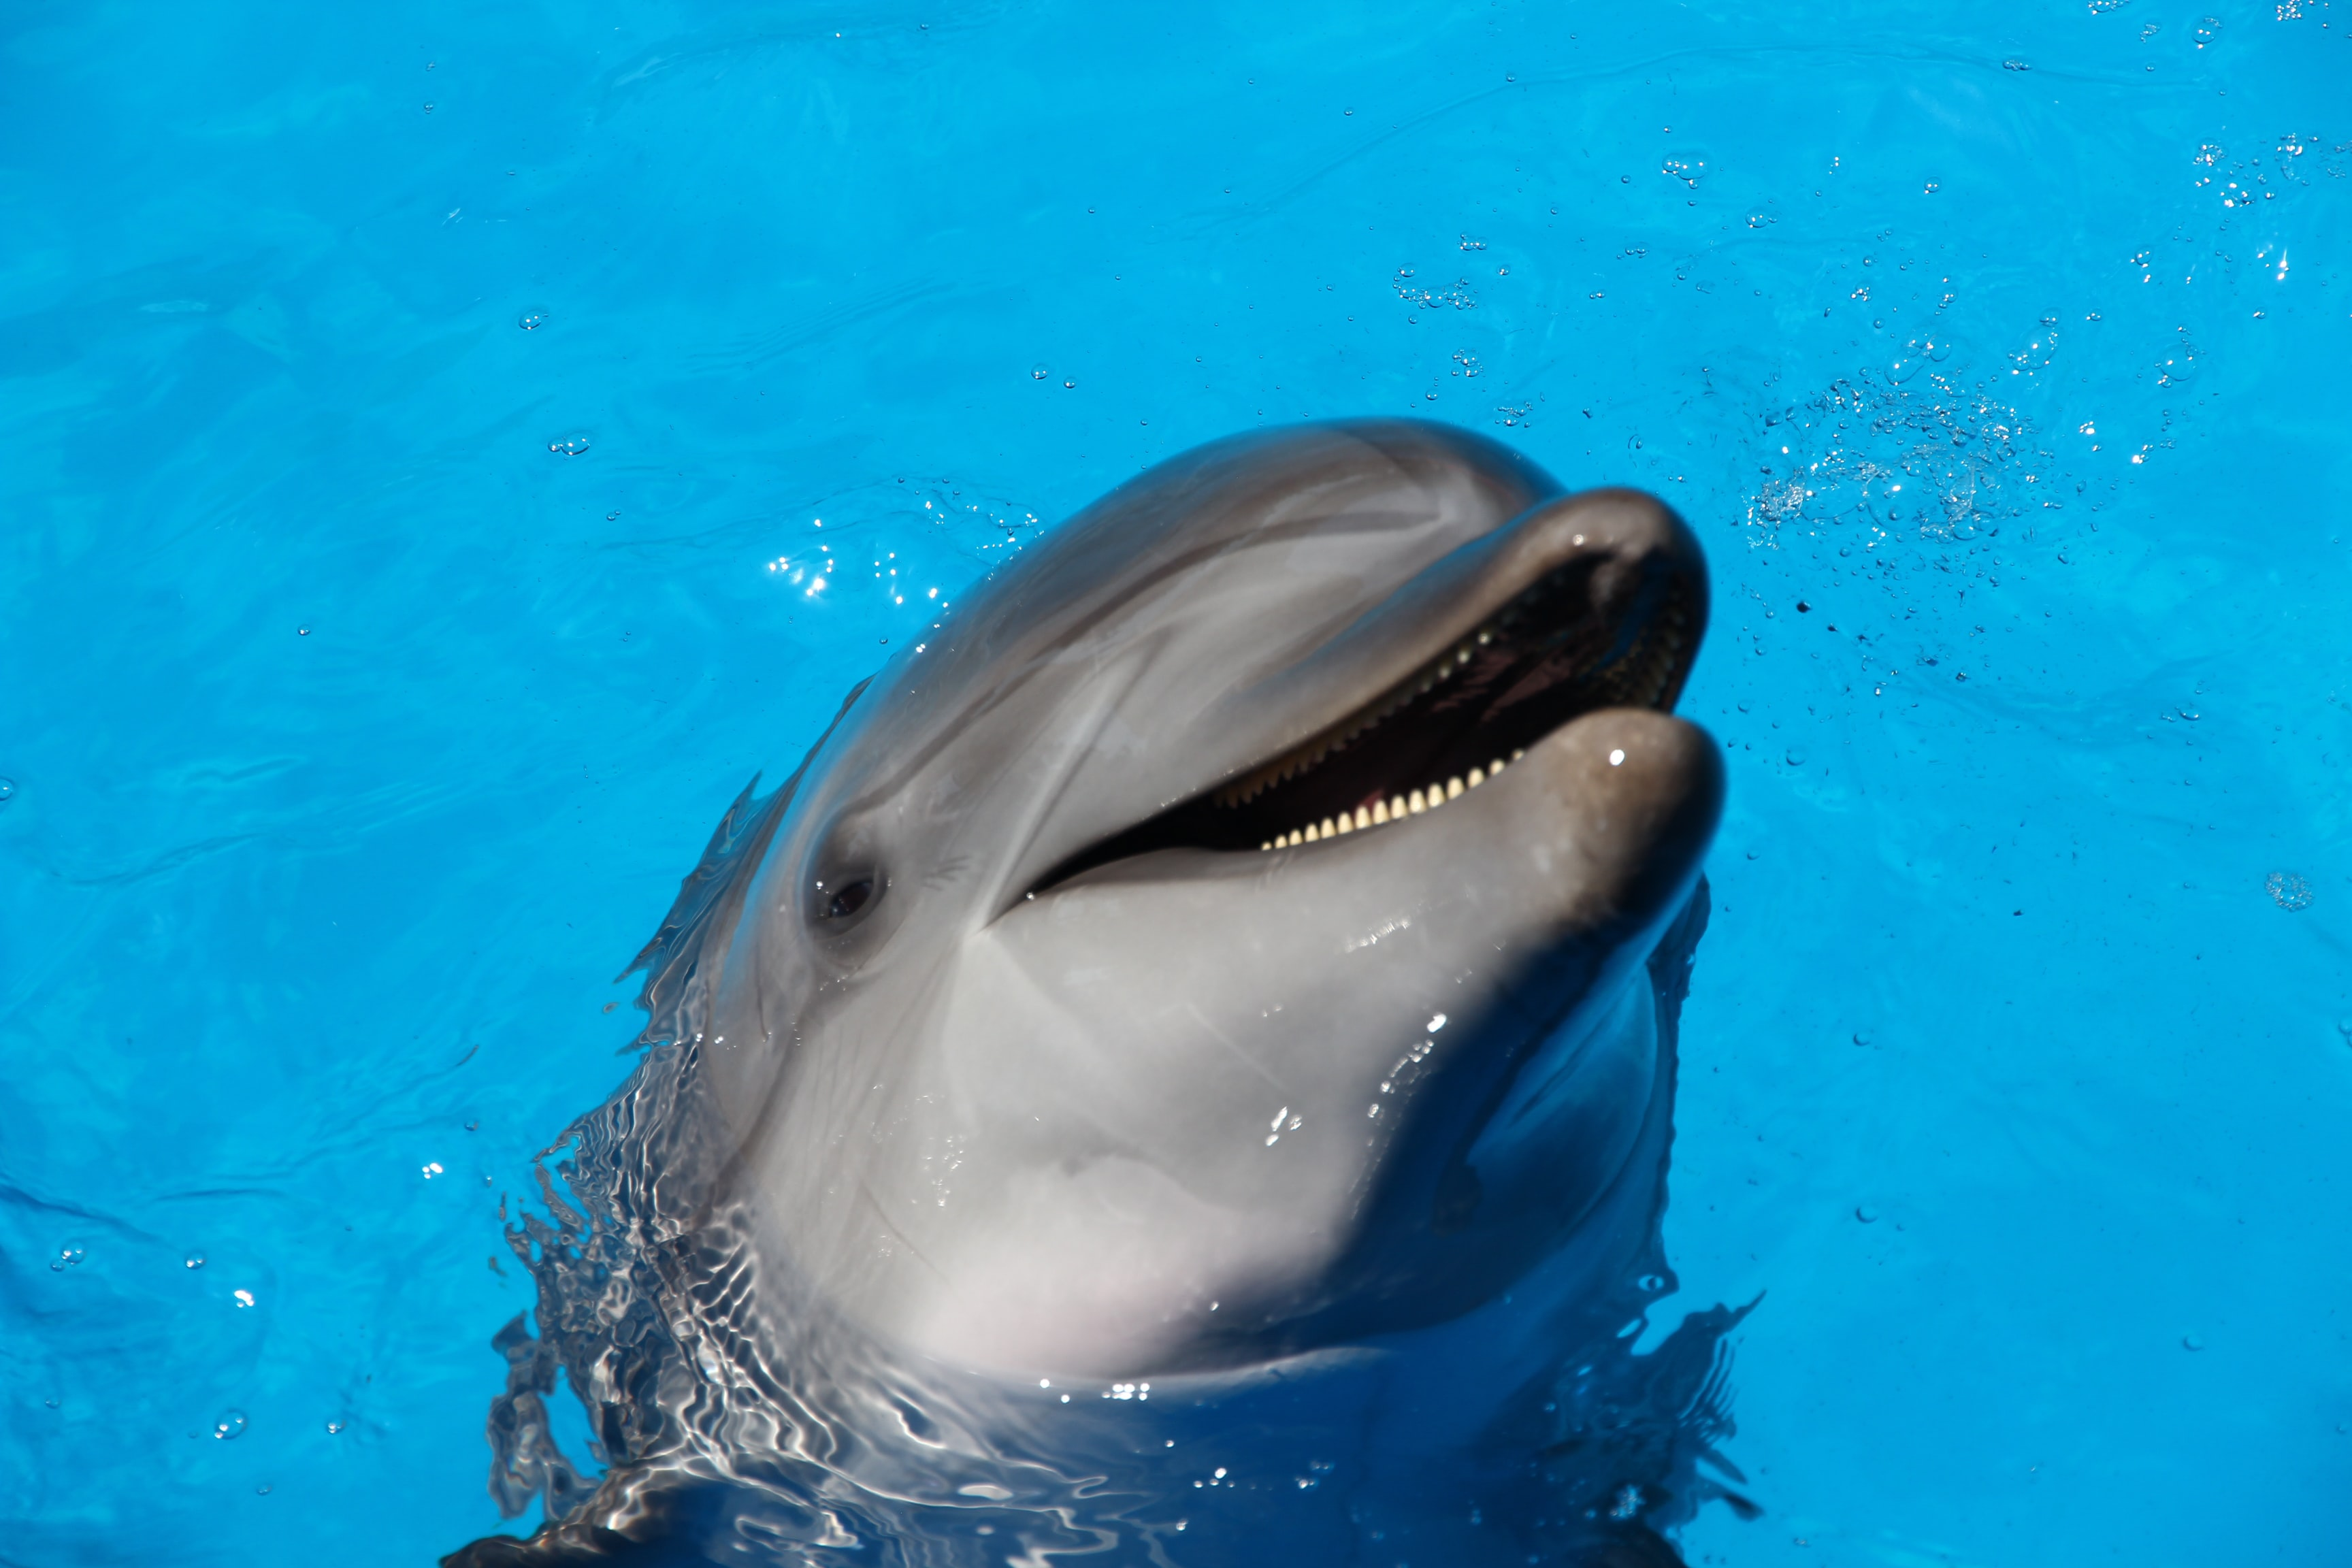 dolphin on water during daytime